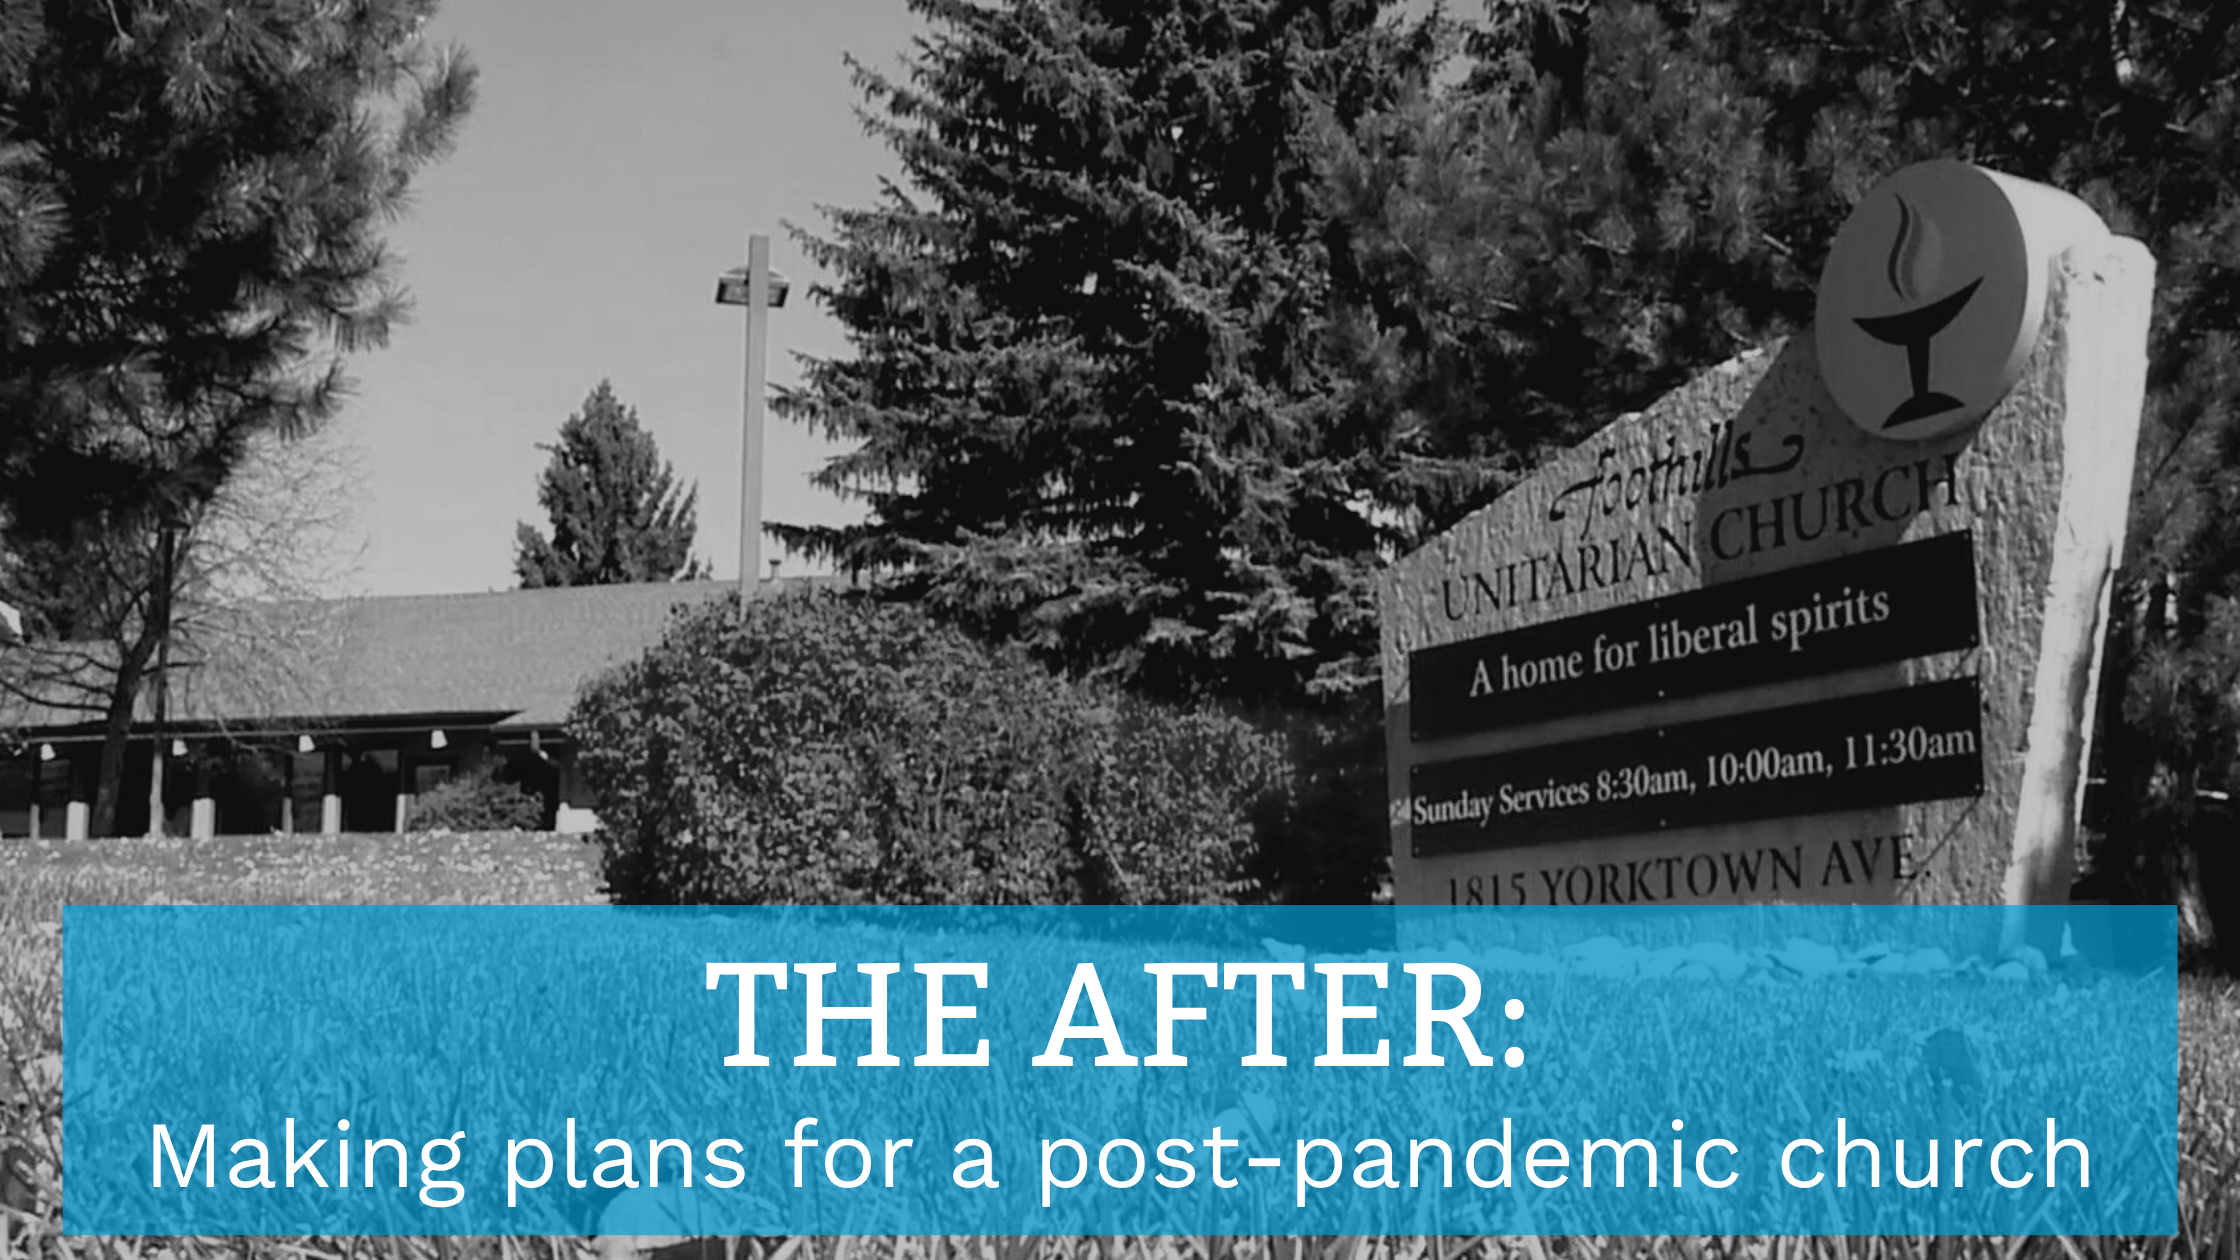 The After: Making Plans for Post-Pandemic Church